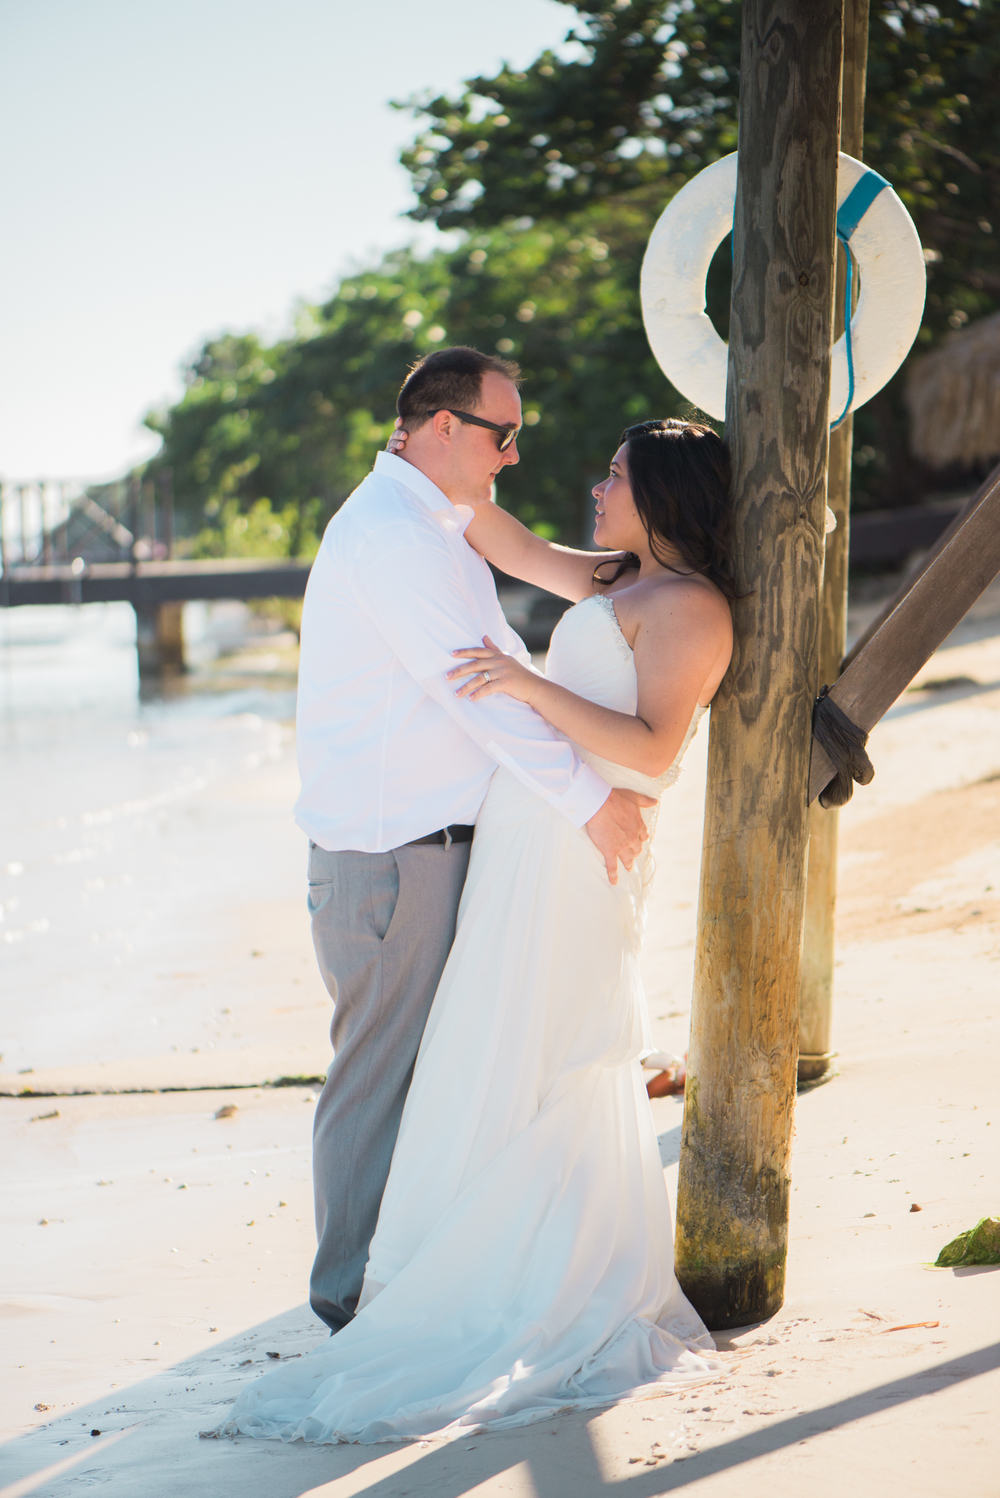 JadeandRyan-Montego-Bay-Jamaica-Wedding-Iberostar-Resort-Beach-88.jpg